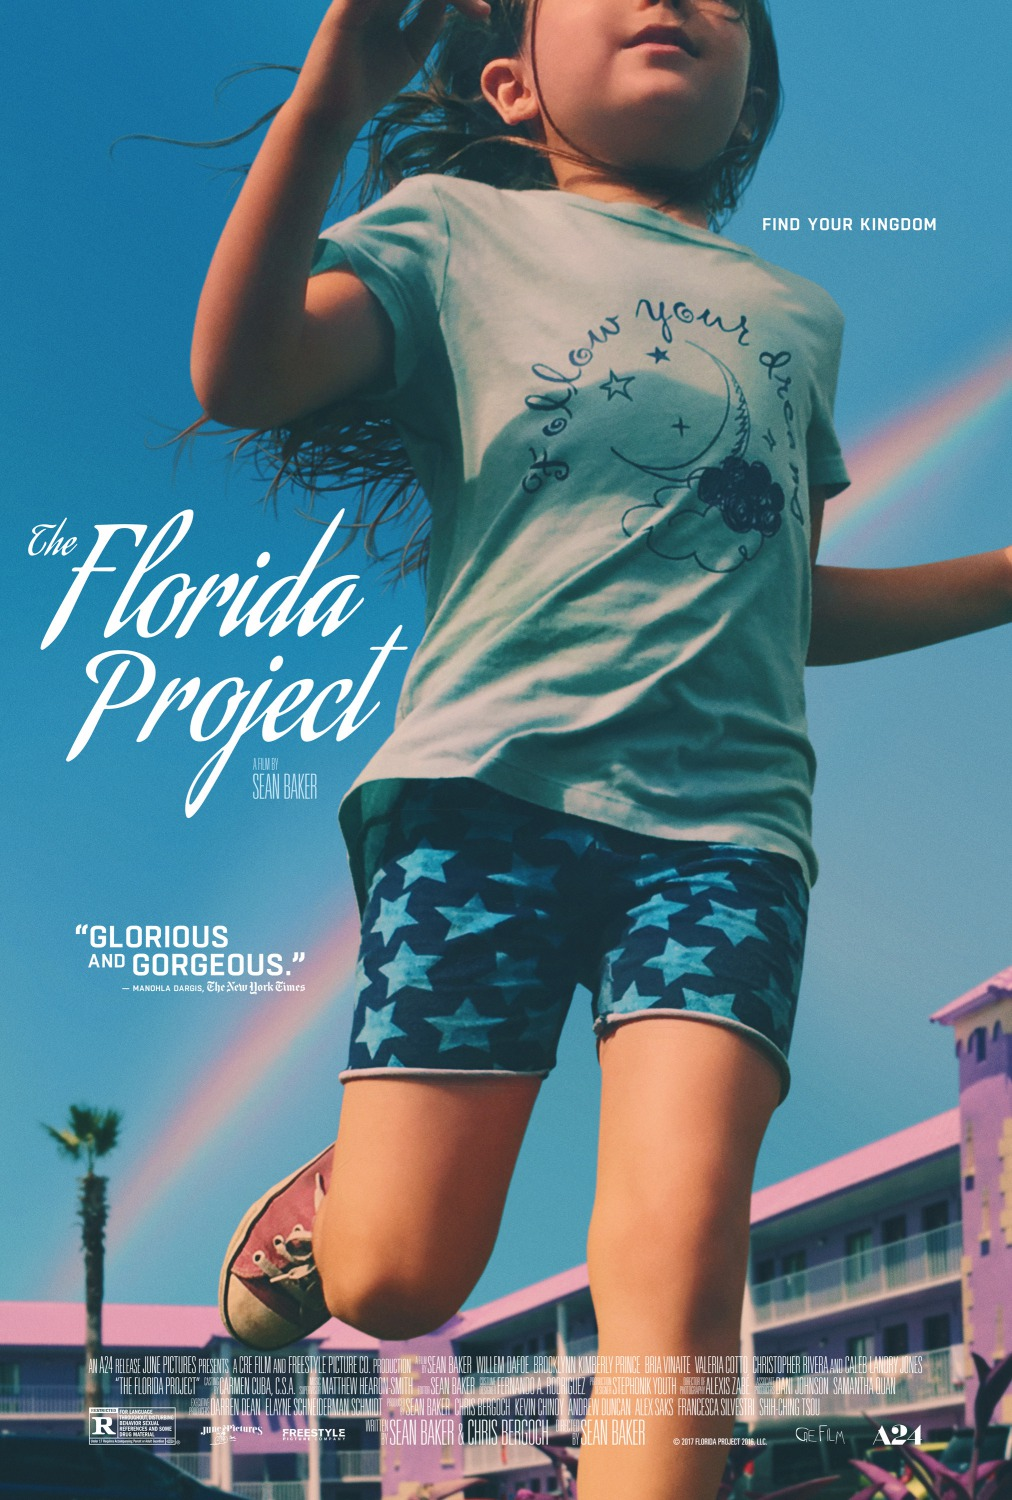 The Florida Project   (2017) dir. Sean Baker Rated: R image: ©2017  A24